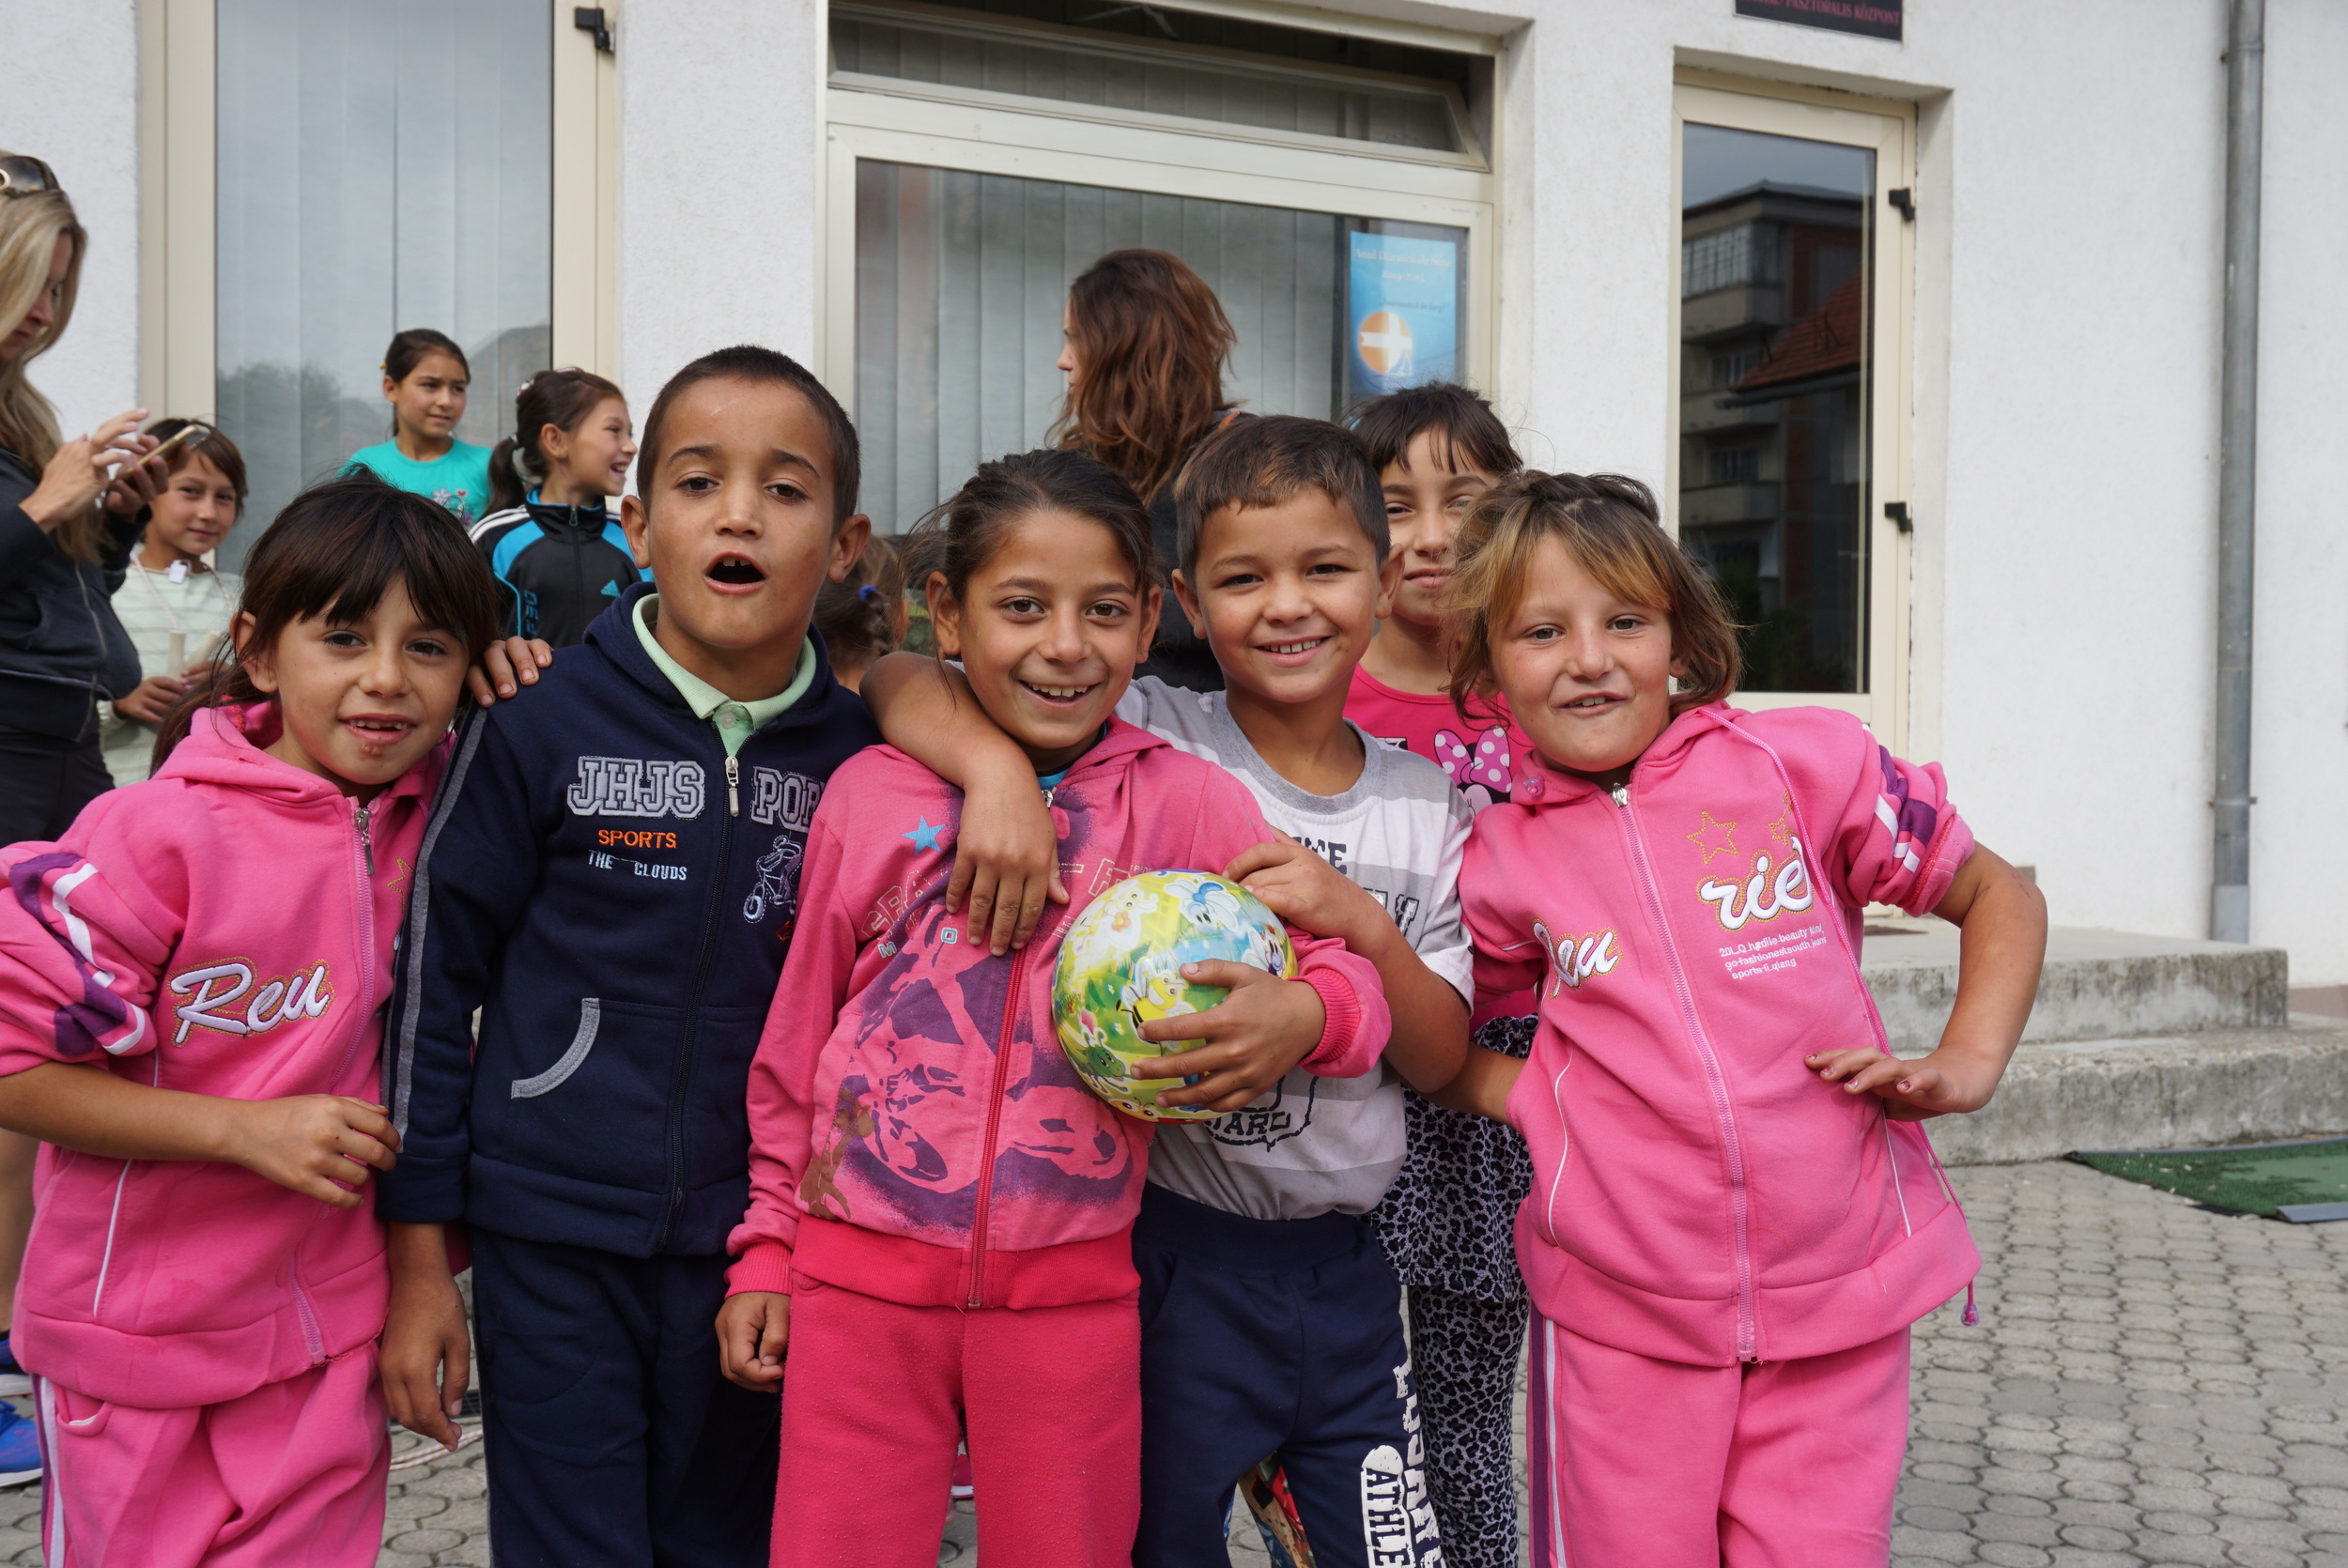 The Roma children during recess - they were all amazing to work with and help and simply couldn't stop smiling for the camera and hugging us!